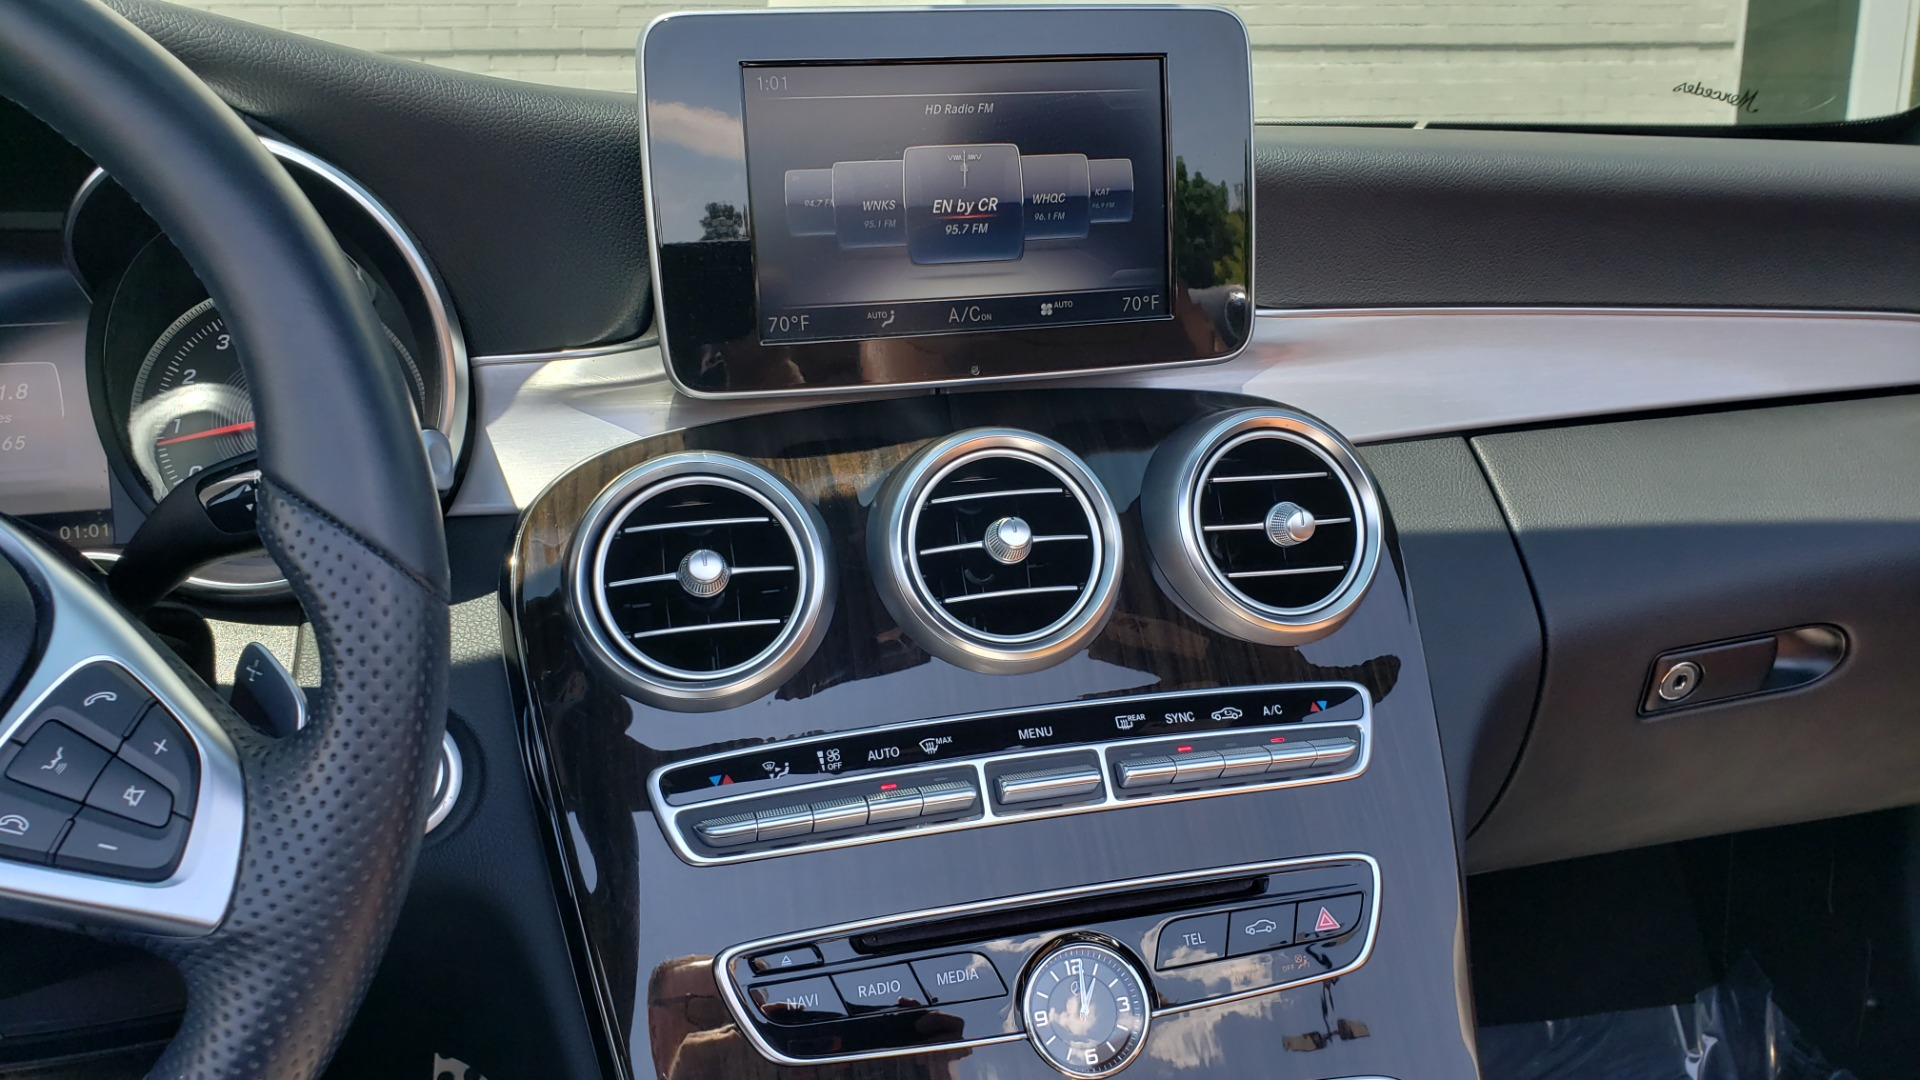 Used 2018 Mercedes-Benz C-CLASS C 300 CABRIOLET PREMIUM / AWD / BURMESTER SND / APPLE / REARVIEW for sale $44,995 at Formula Imports in Charlotte NC 28227 57